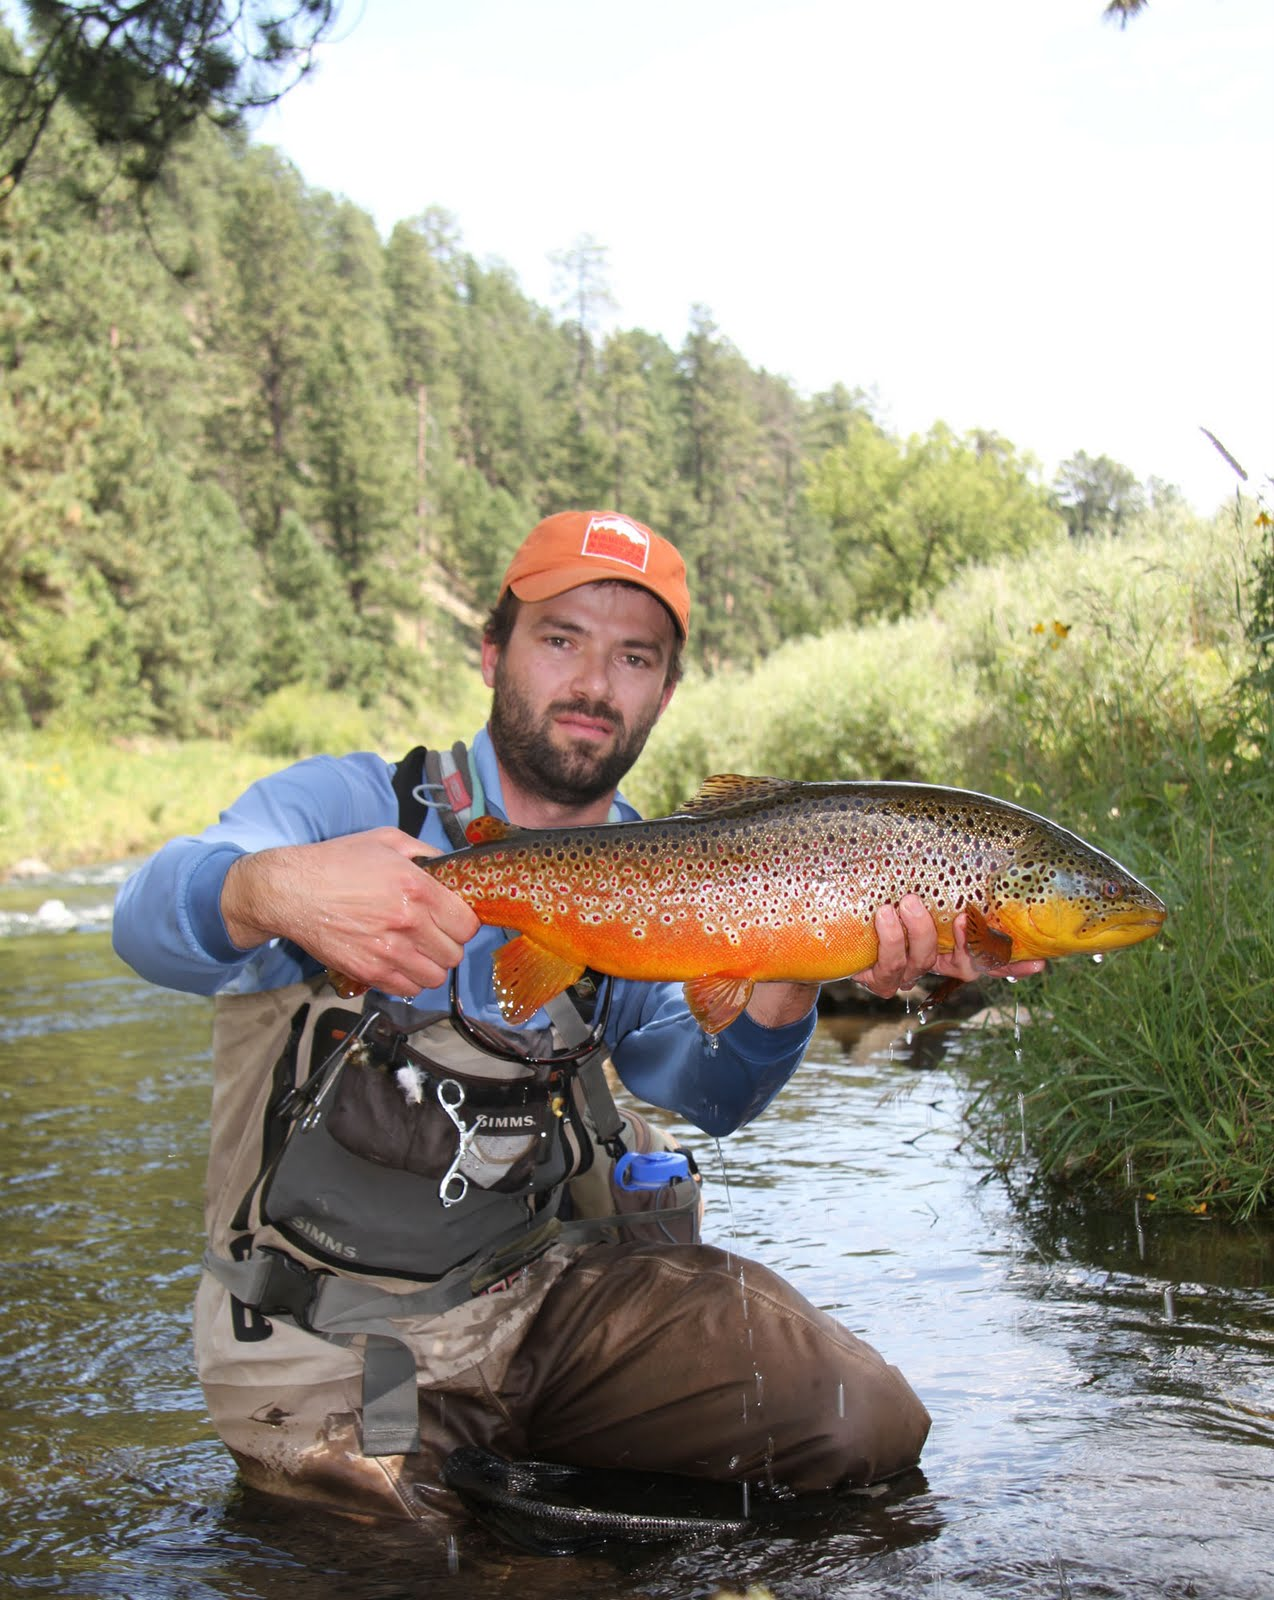 Black hills fly fishing dang purty brown trout for Brown trout fly fishing